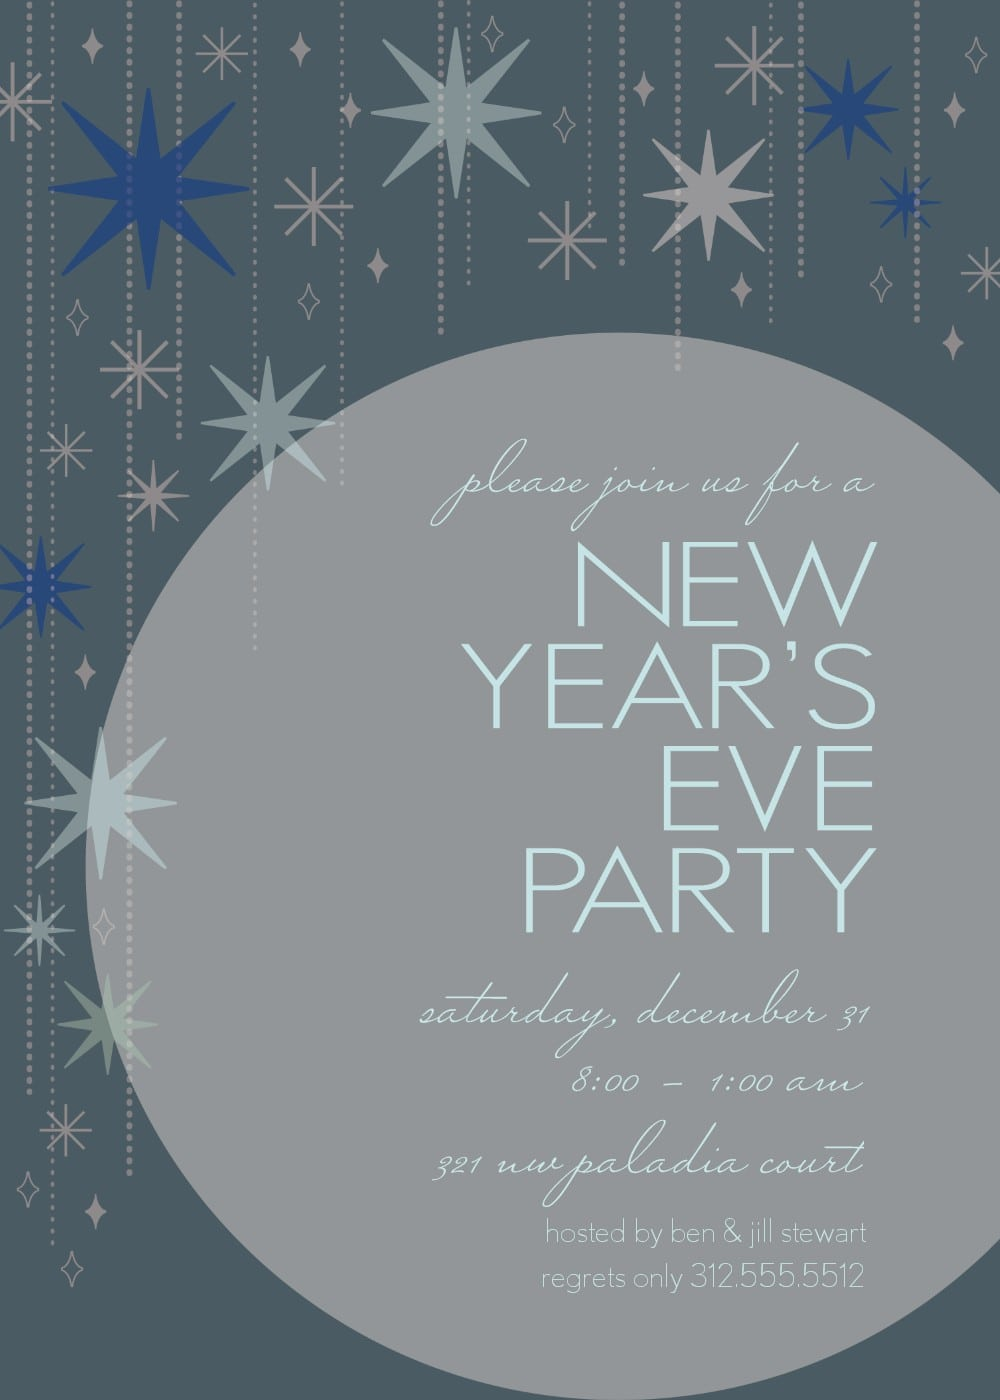 New Years Eve Party Invitation Templates - New years eve party invitation templates free